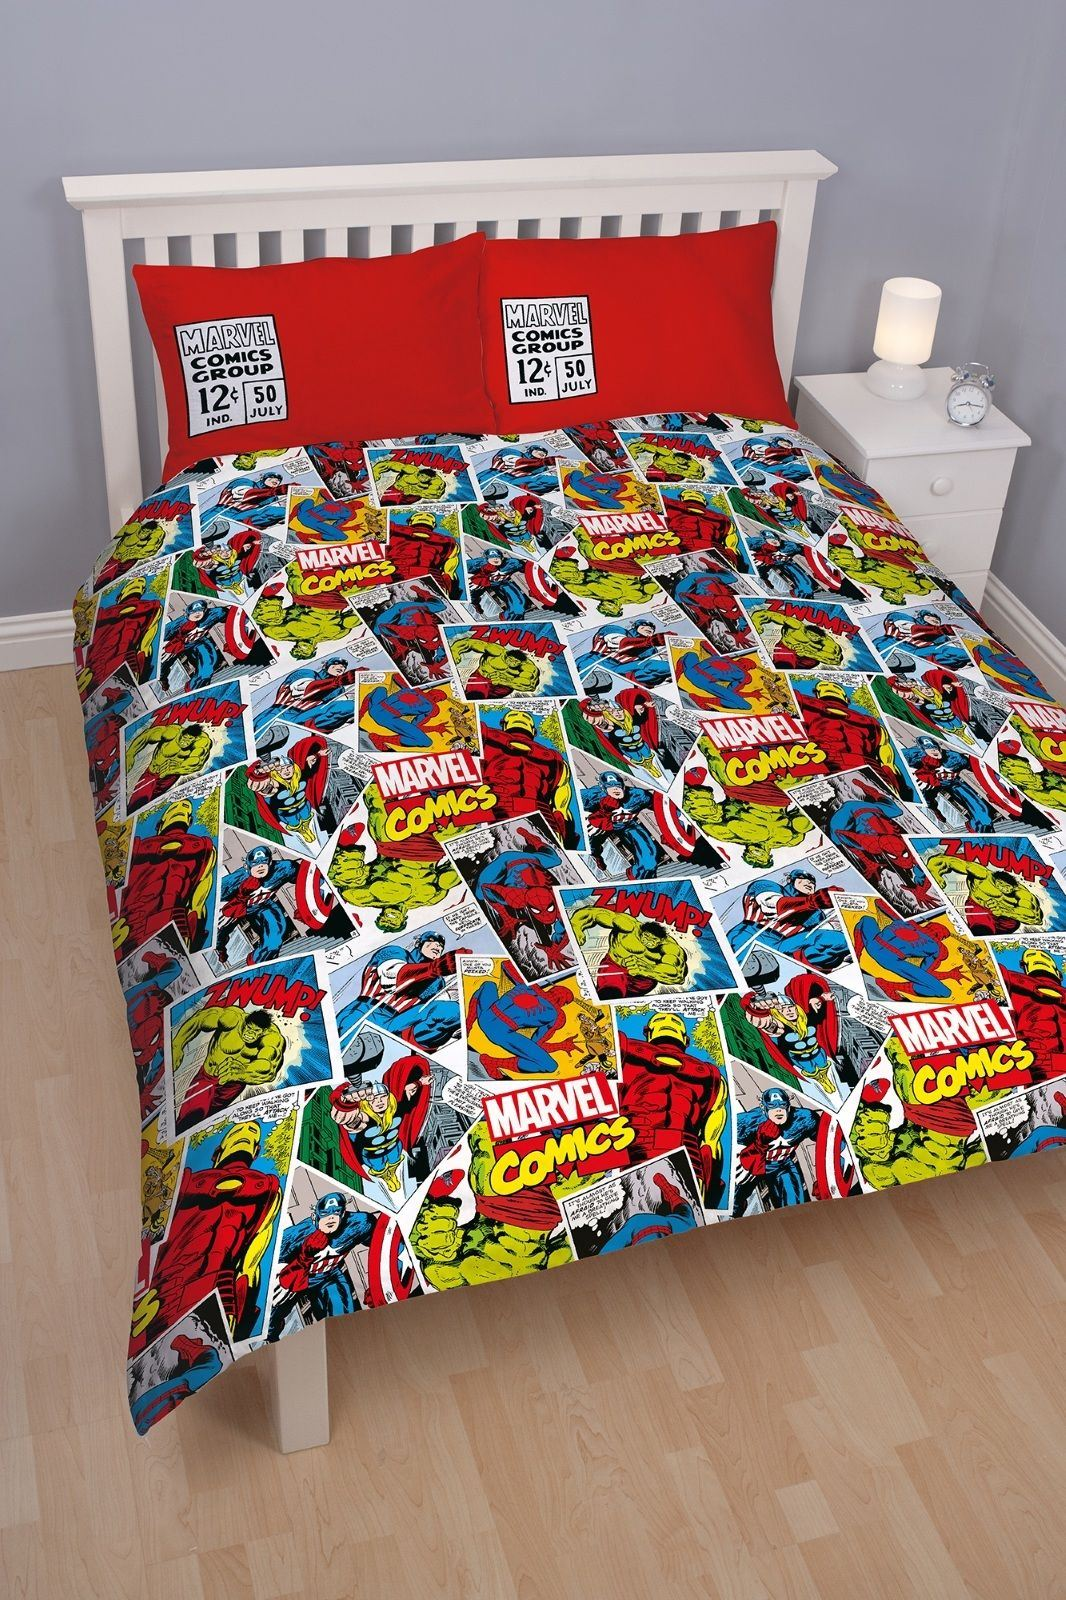 Official-Marvel-Comics-Avengers-Licensed-Duvet-Covers-Single-Double thumbnail 29